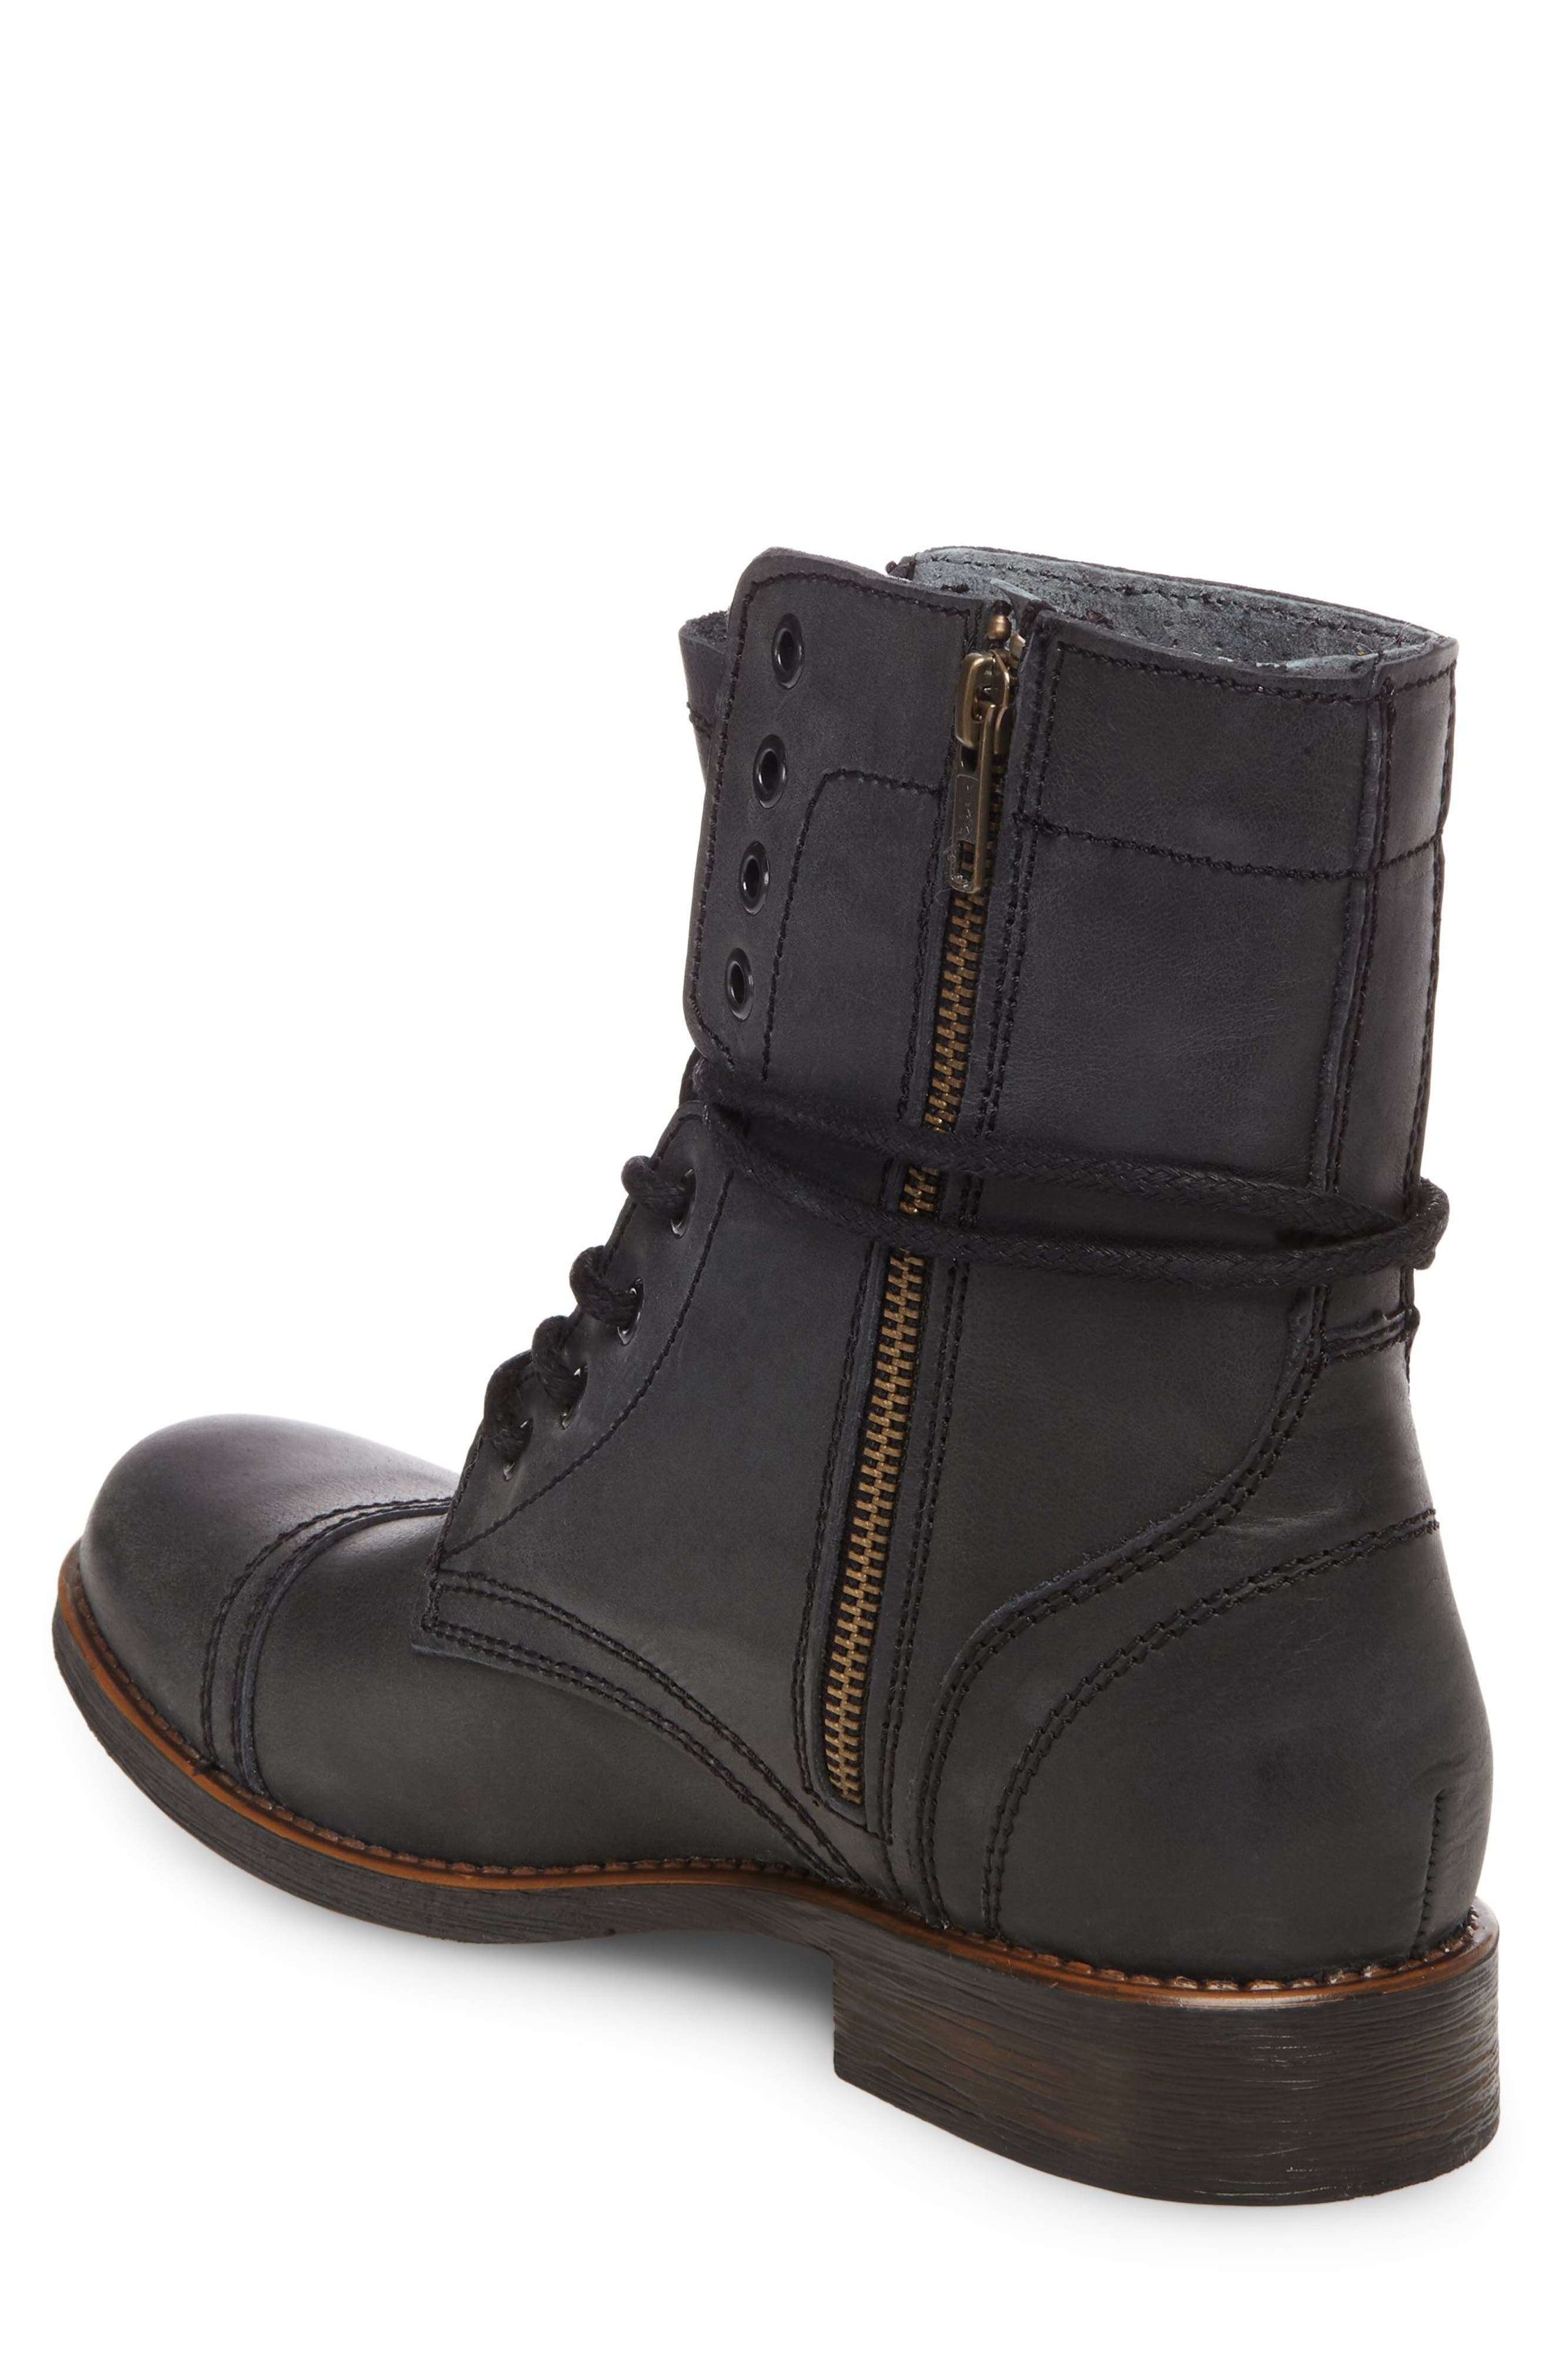 Troopah-C Cap Toe Boot,                             Alternate thumbnail 2, color,                             BLACK LEATHER